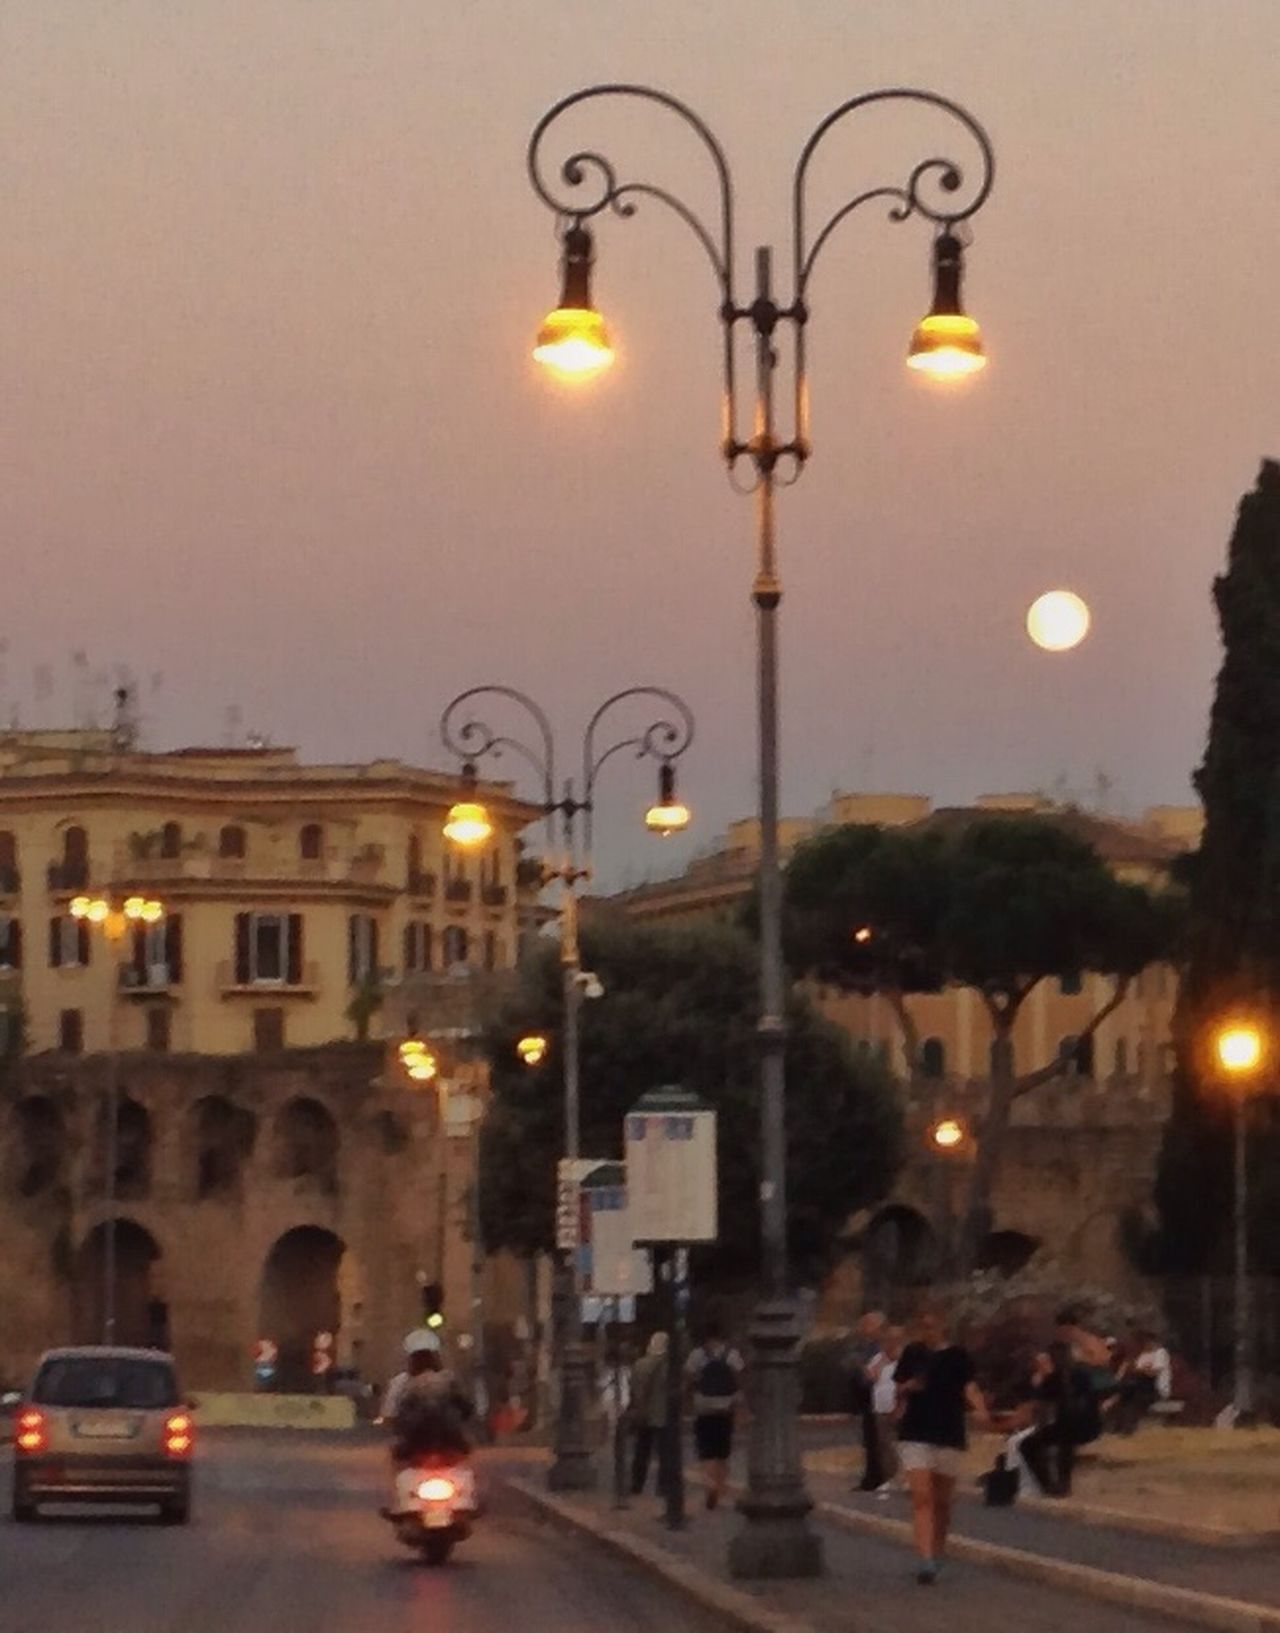 Roman evening with full moon.